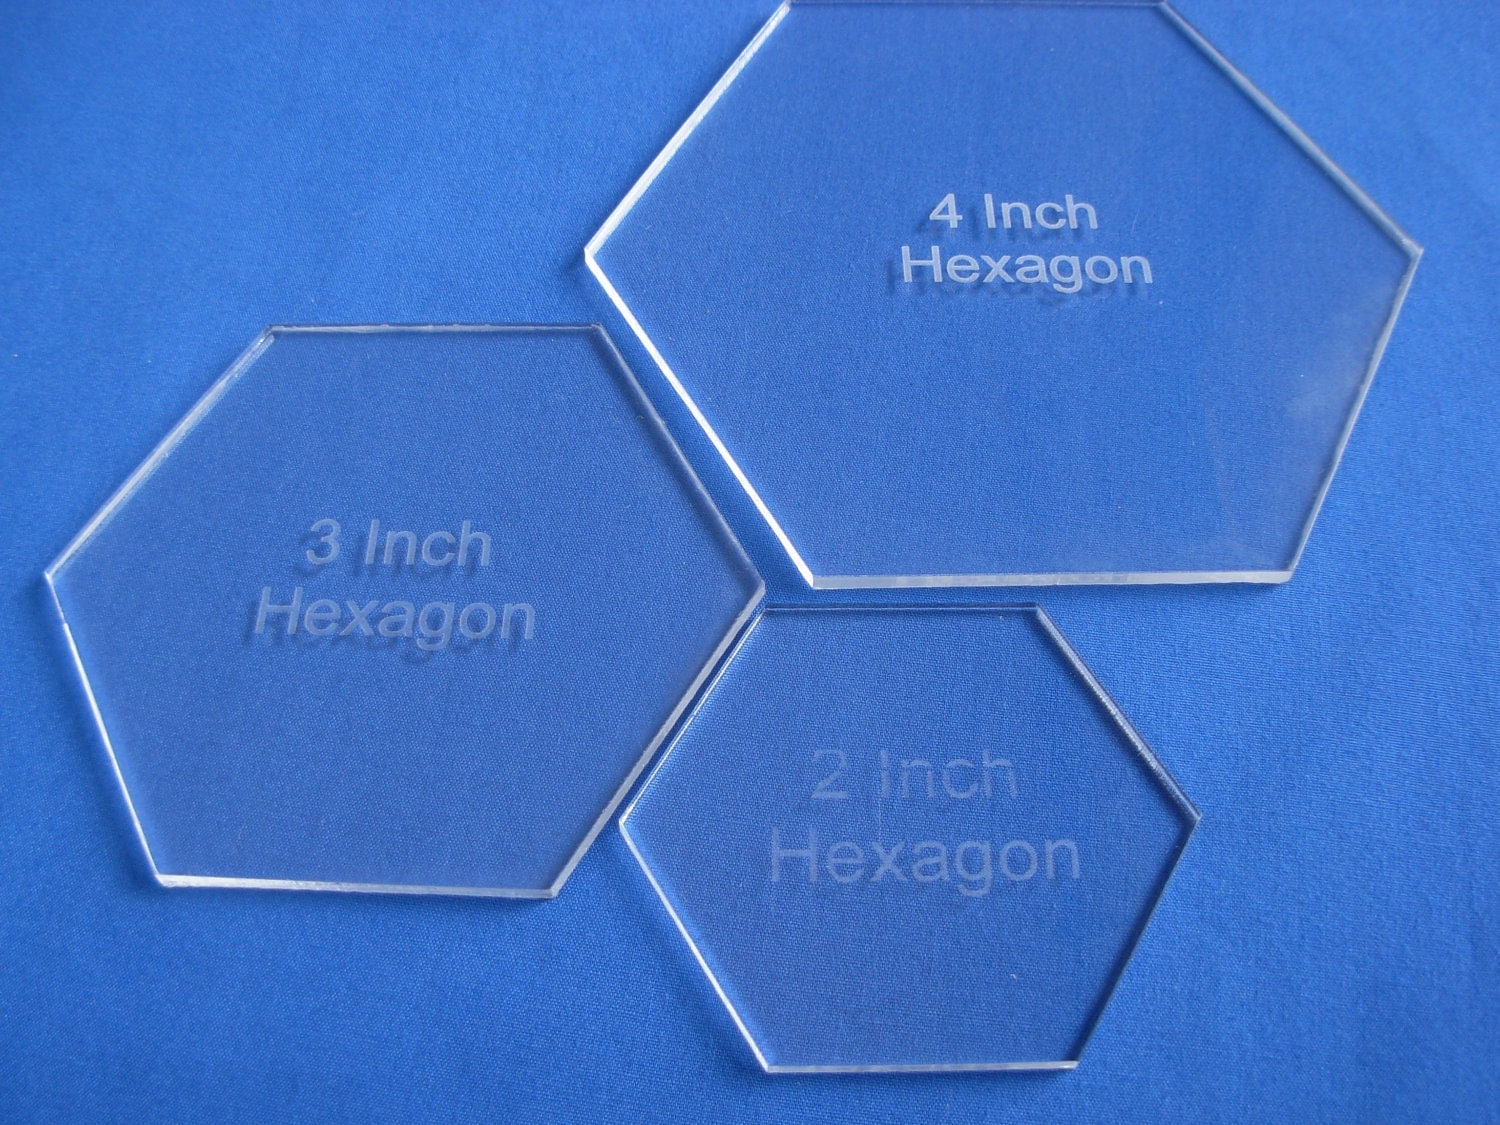 23 &4 Inch Hexagon Quilt Template set 1/8 Clear by Customplastic